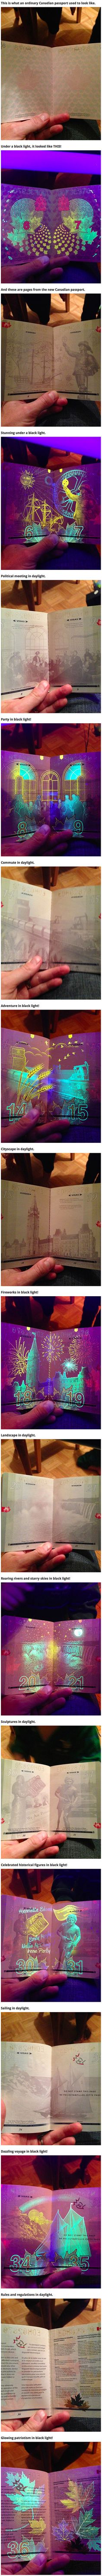 The Canadian passport has potentially earned the unexpected distinction of being the coolest passport. The pages of the new passport (released in are covered in fun and colorful UV-reactive images that can only be seen under a blacklight. Tumblr Stuff, My Tumblr, Canadian Passport, Memes, Secrets Revealed, Looks Cool, Image Shows, Cool Stuff, Mind Blown